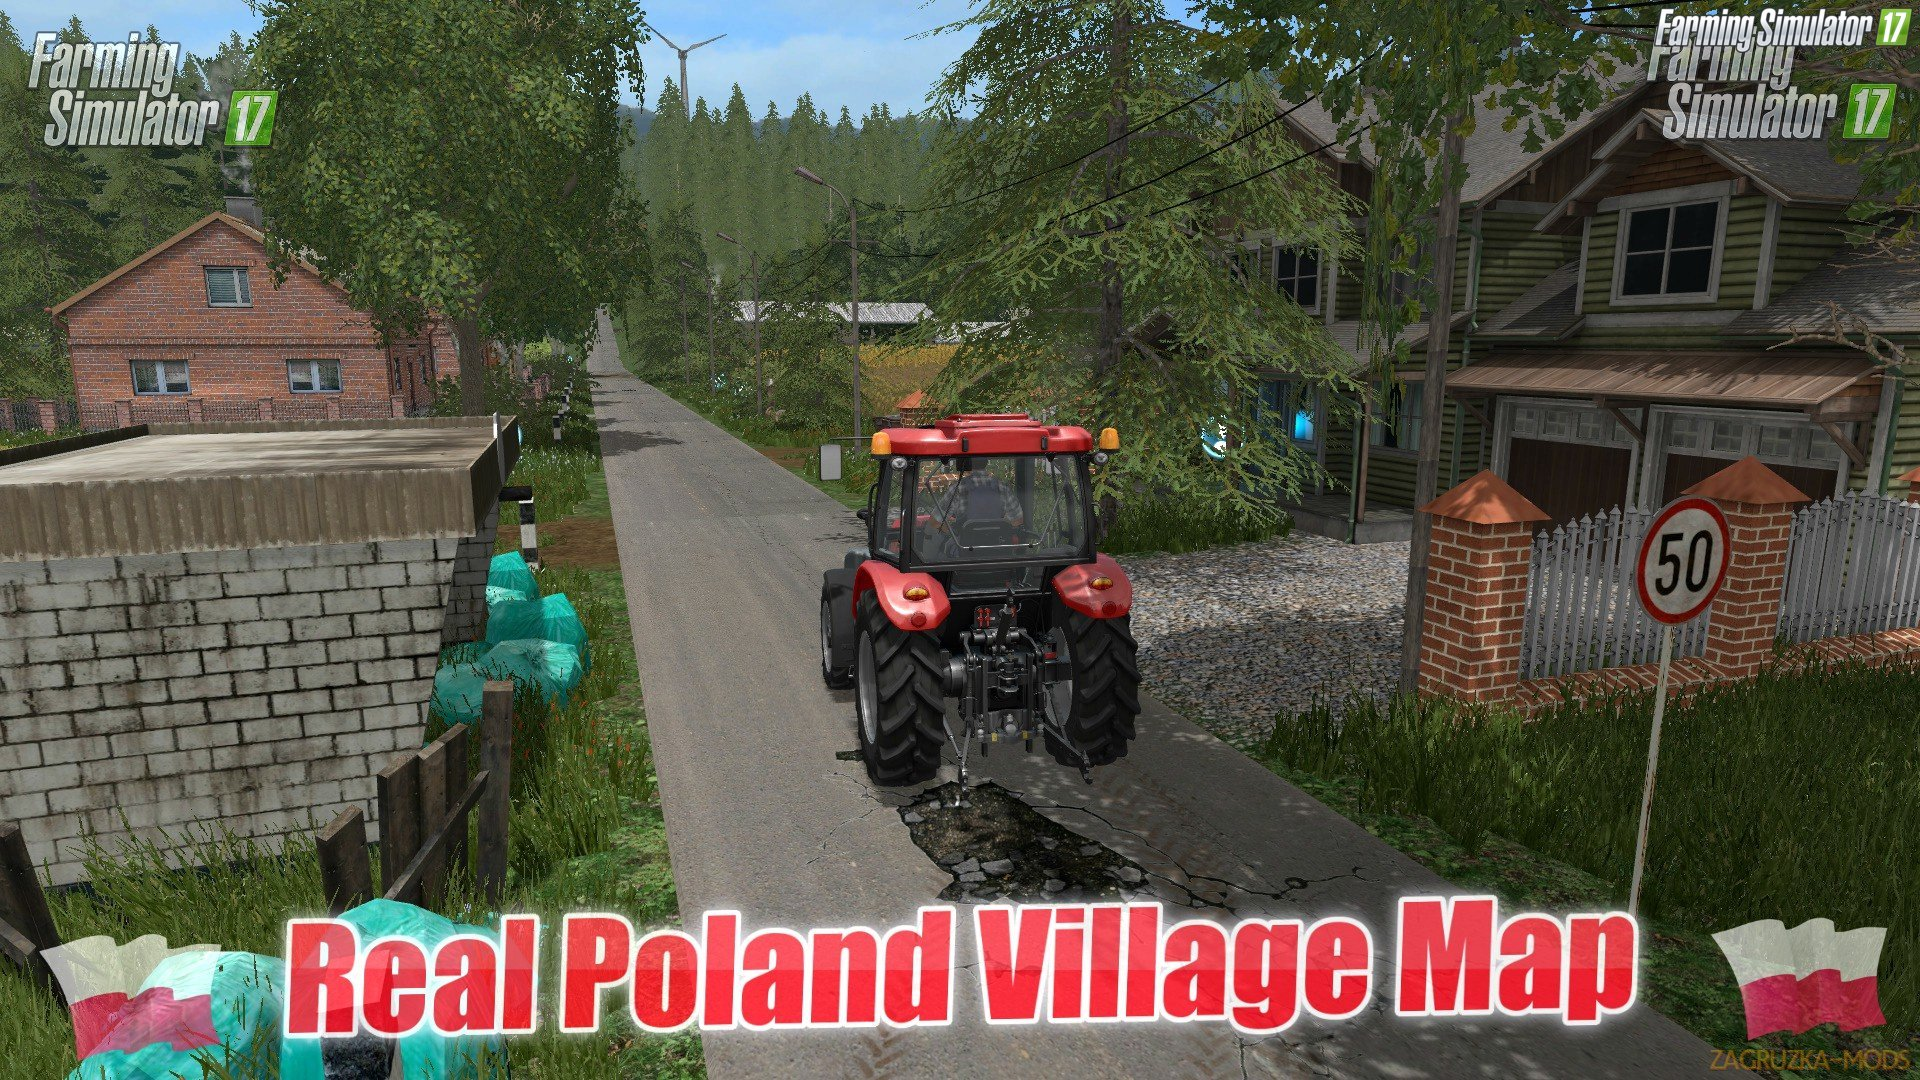 Real Poland Village Map v2.0 by Puma145 for FS 17